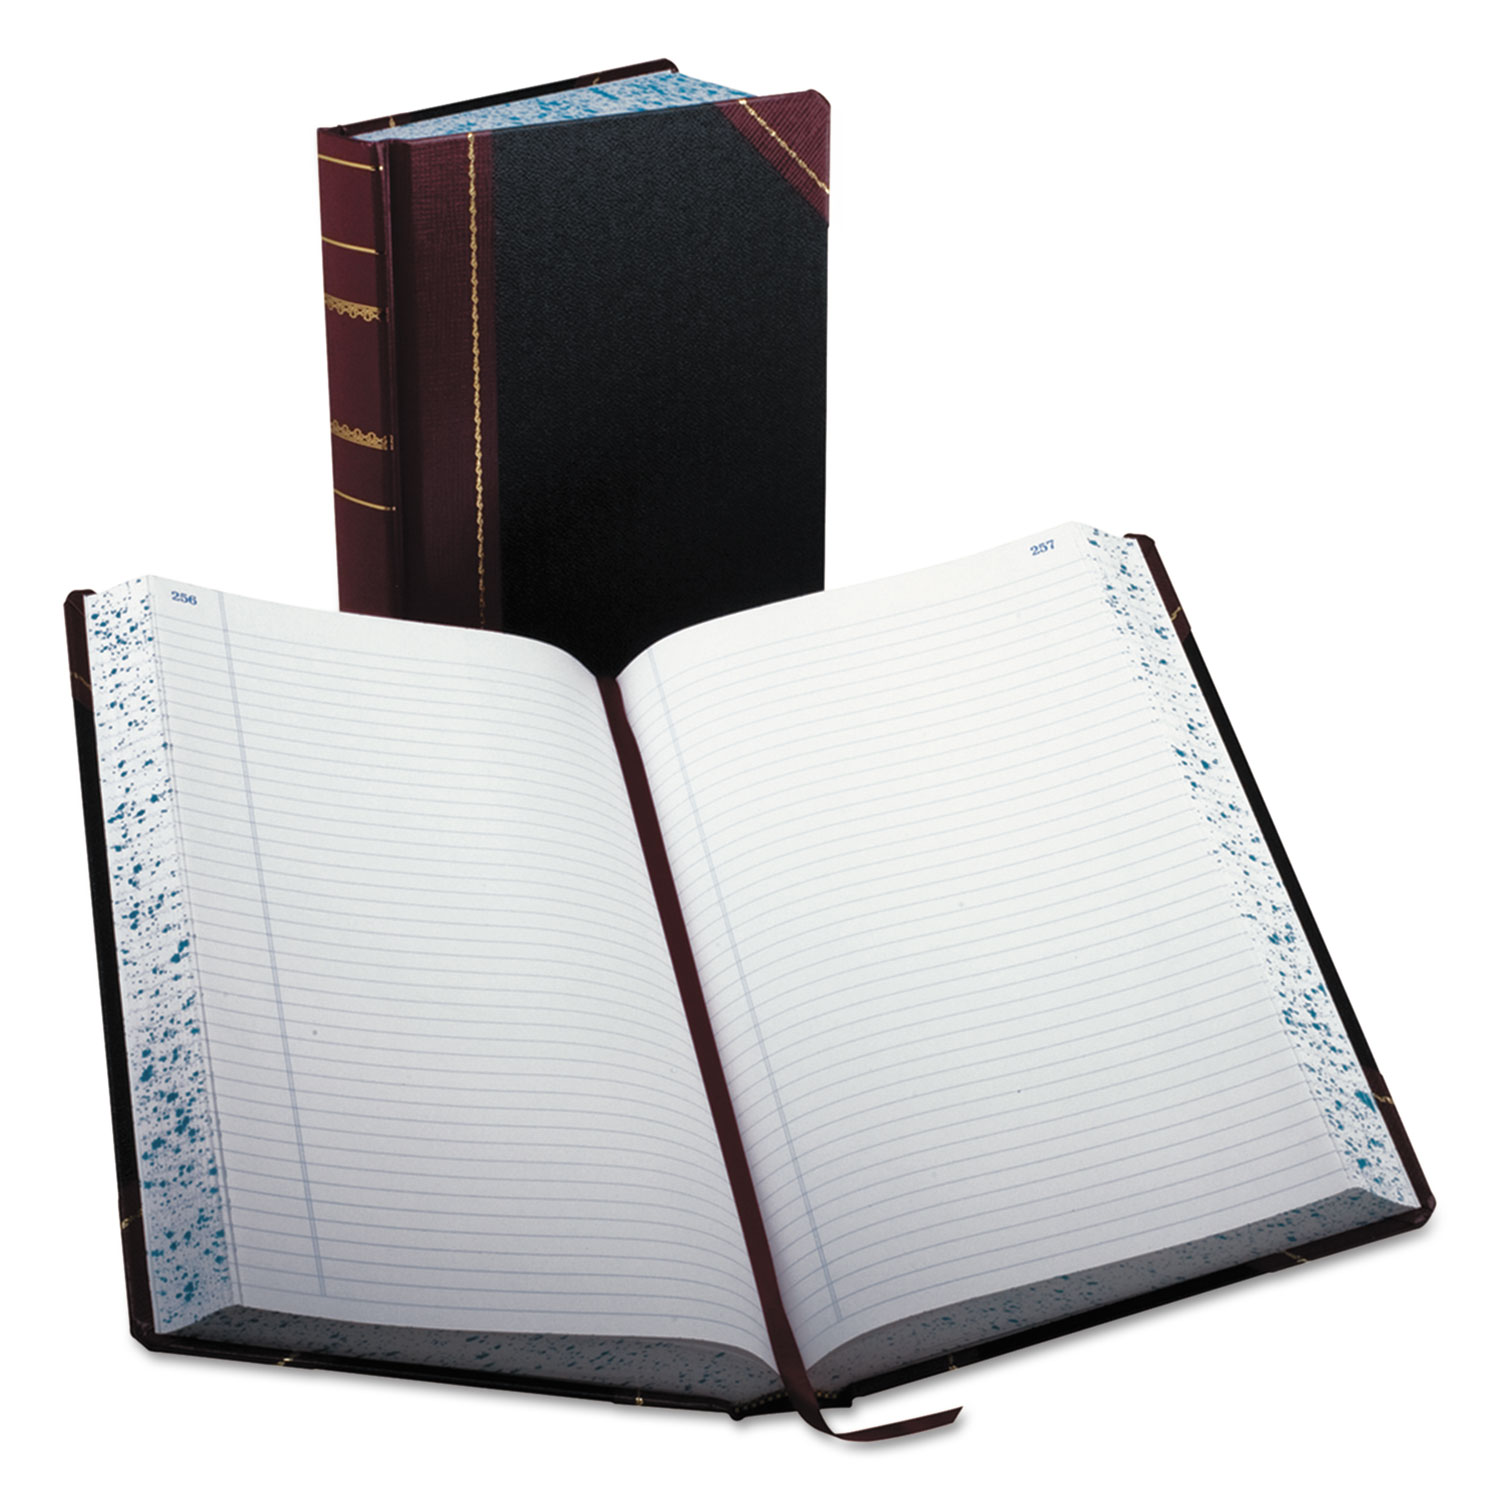 Record/Account Book, Record Rule, Black/Red, 500 Pages, 14 1/8 x 8 5/8